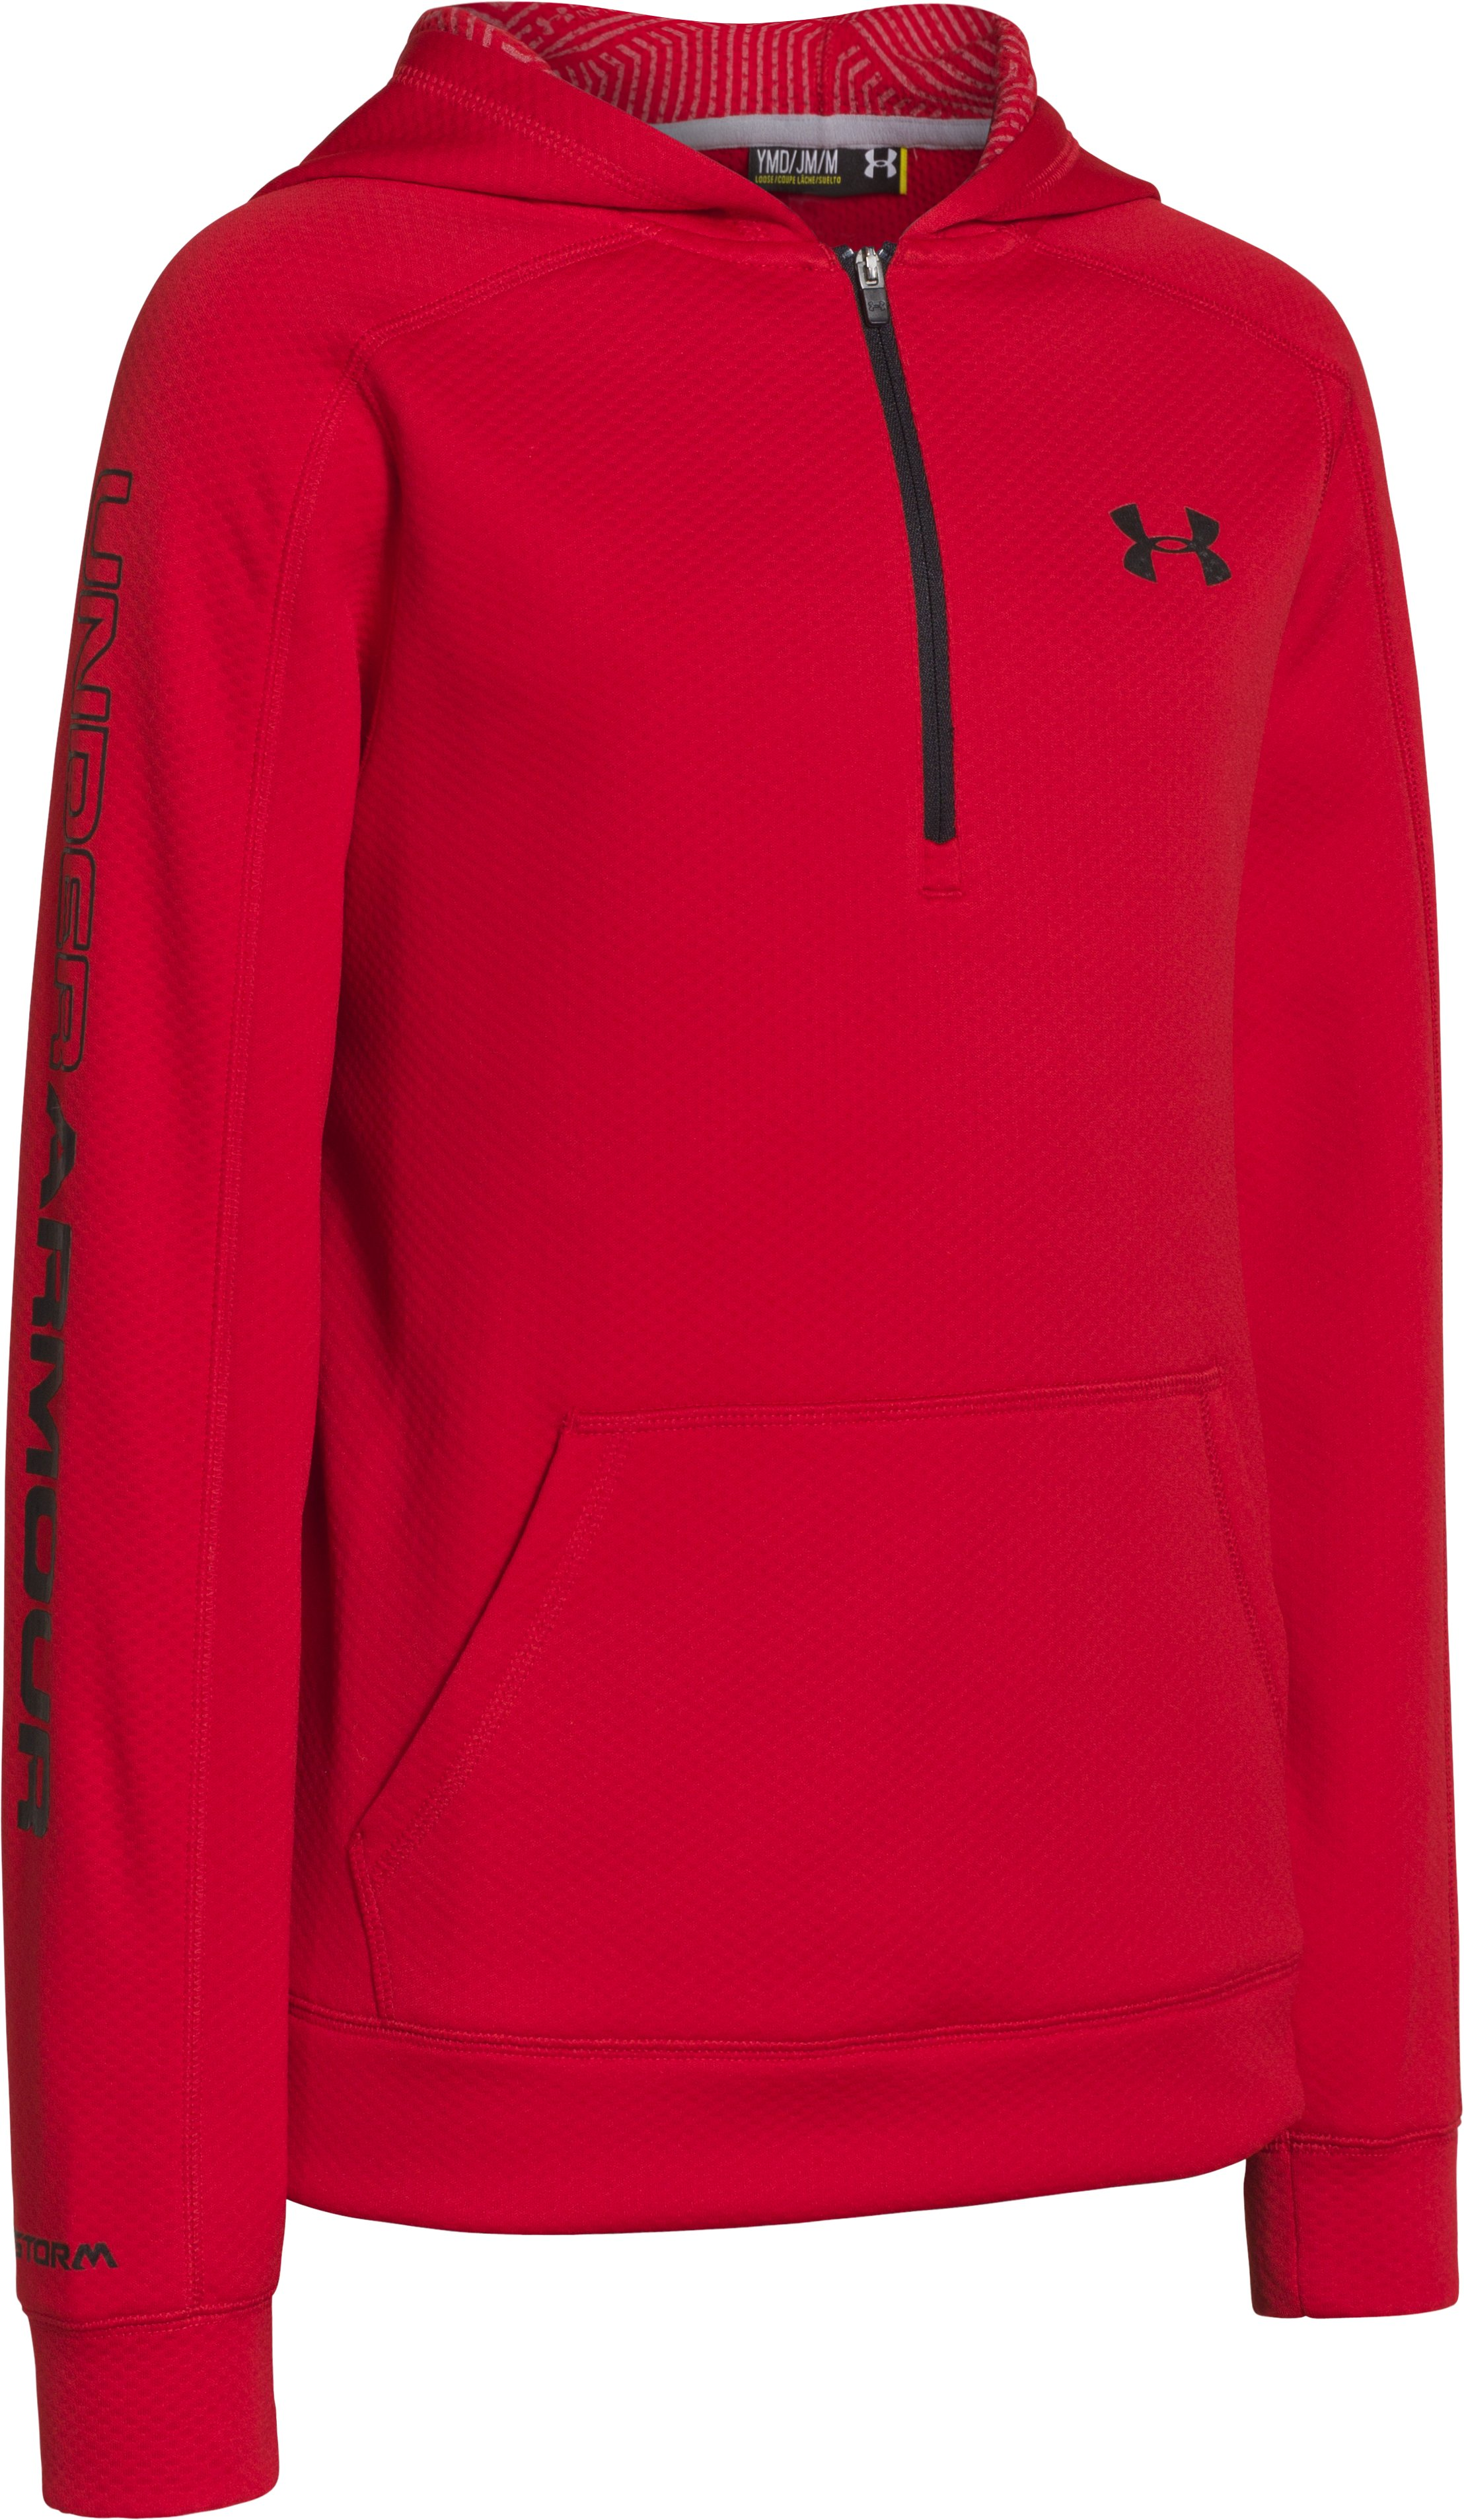 Boys' UA Storm ColdGear® Infrared Hoodie, Red, zoomed image